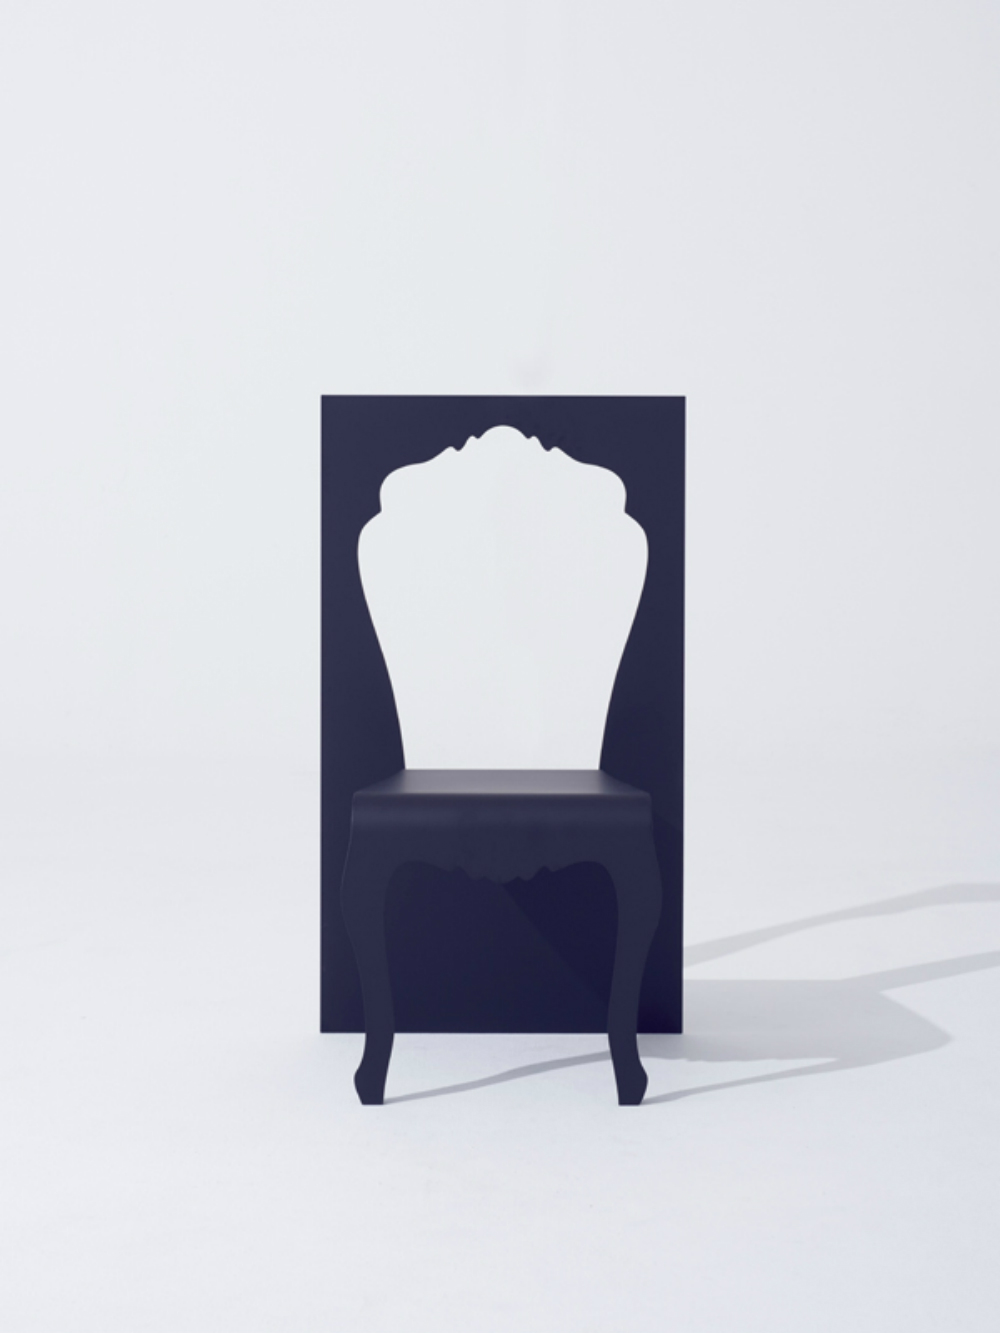 The 7 Most Unique Furniture Designs of All Time unique furniture designs The 7 Most Unique Furniture Designs of All Time 7 unique furniture designs of all time yoy chair 1